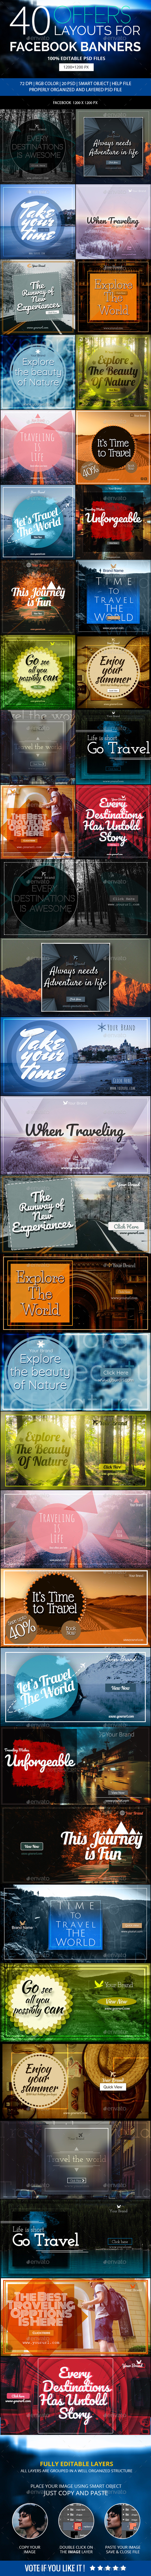 40 -  Travel Facebook Banners Ad - Social Media Web Elements